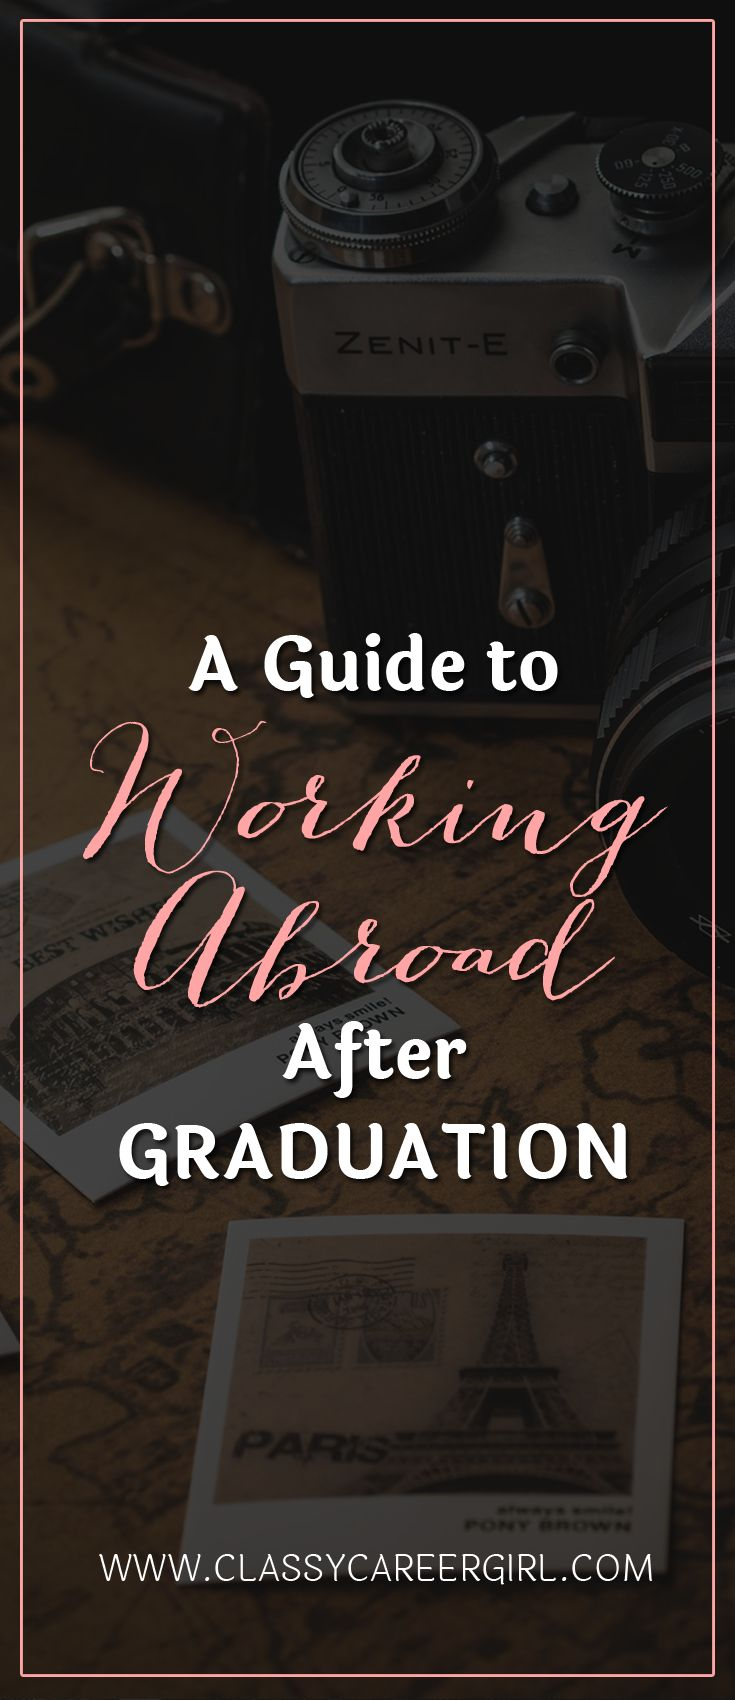 A Guide to Working Abroad After Graduation  Most people will be telling you to dive headfirst into the workforce by looking for a local job in your field, but why not expand your sights a little bit further? What about opening up your job search to include the entire world and embarking on an adventure working overseas?  Read More: http://www.classycareergirl.com/2012/09/a-guide-to-working-abroad-after-graduation/